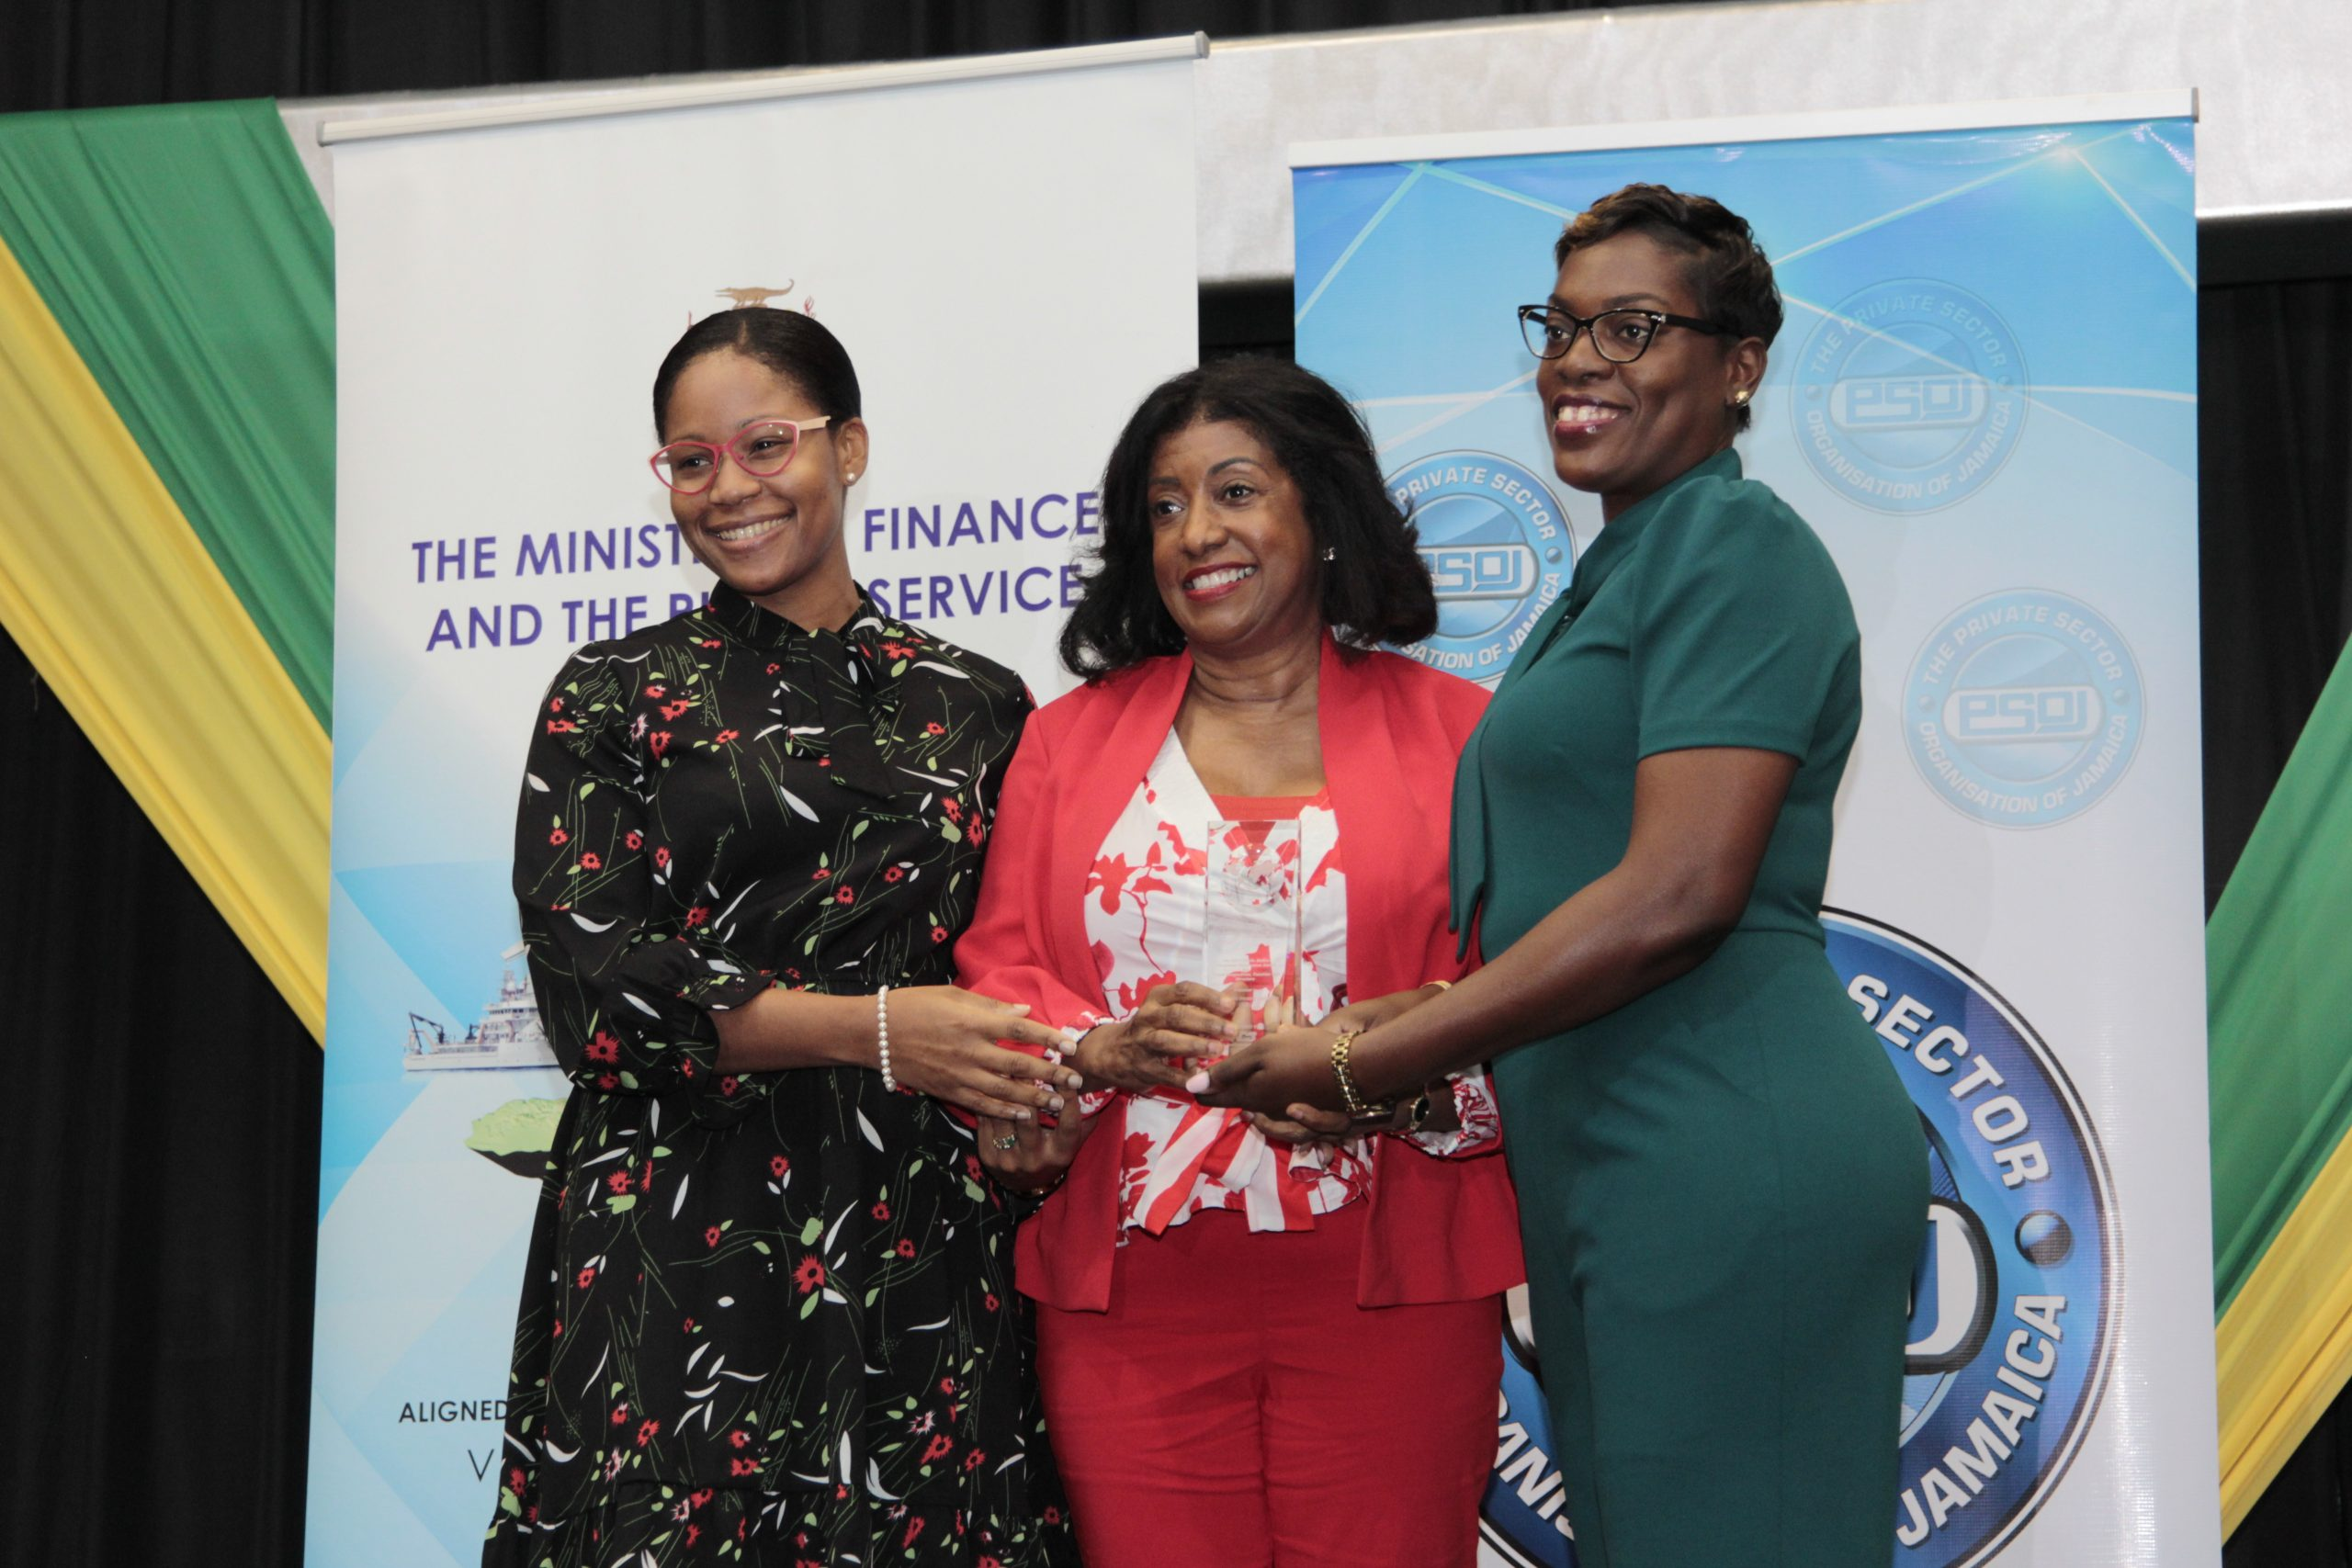 JDIC's General Counsel and Corporate Secretary, Stacie Ann Carty and CEO Antoinette McKain accept the award for Best Board Composition, Function and Structure from Cornella Alladice, Corporate Relationship Manager, NCB at the Public Sector Corporate Governance Awards 2019.